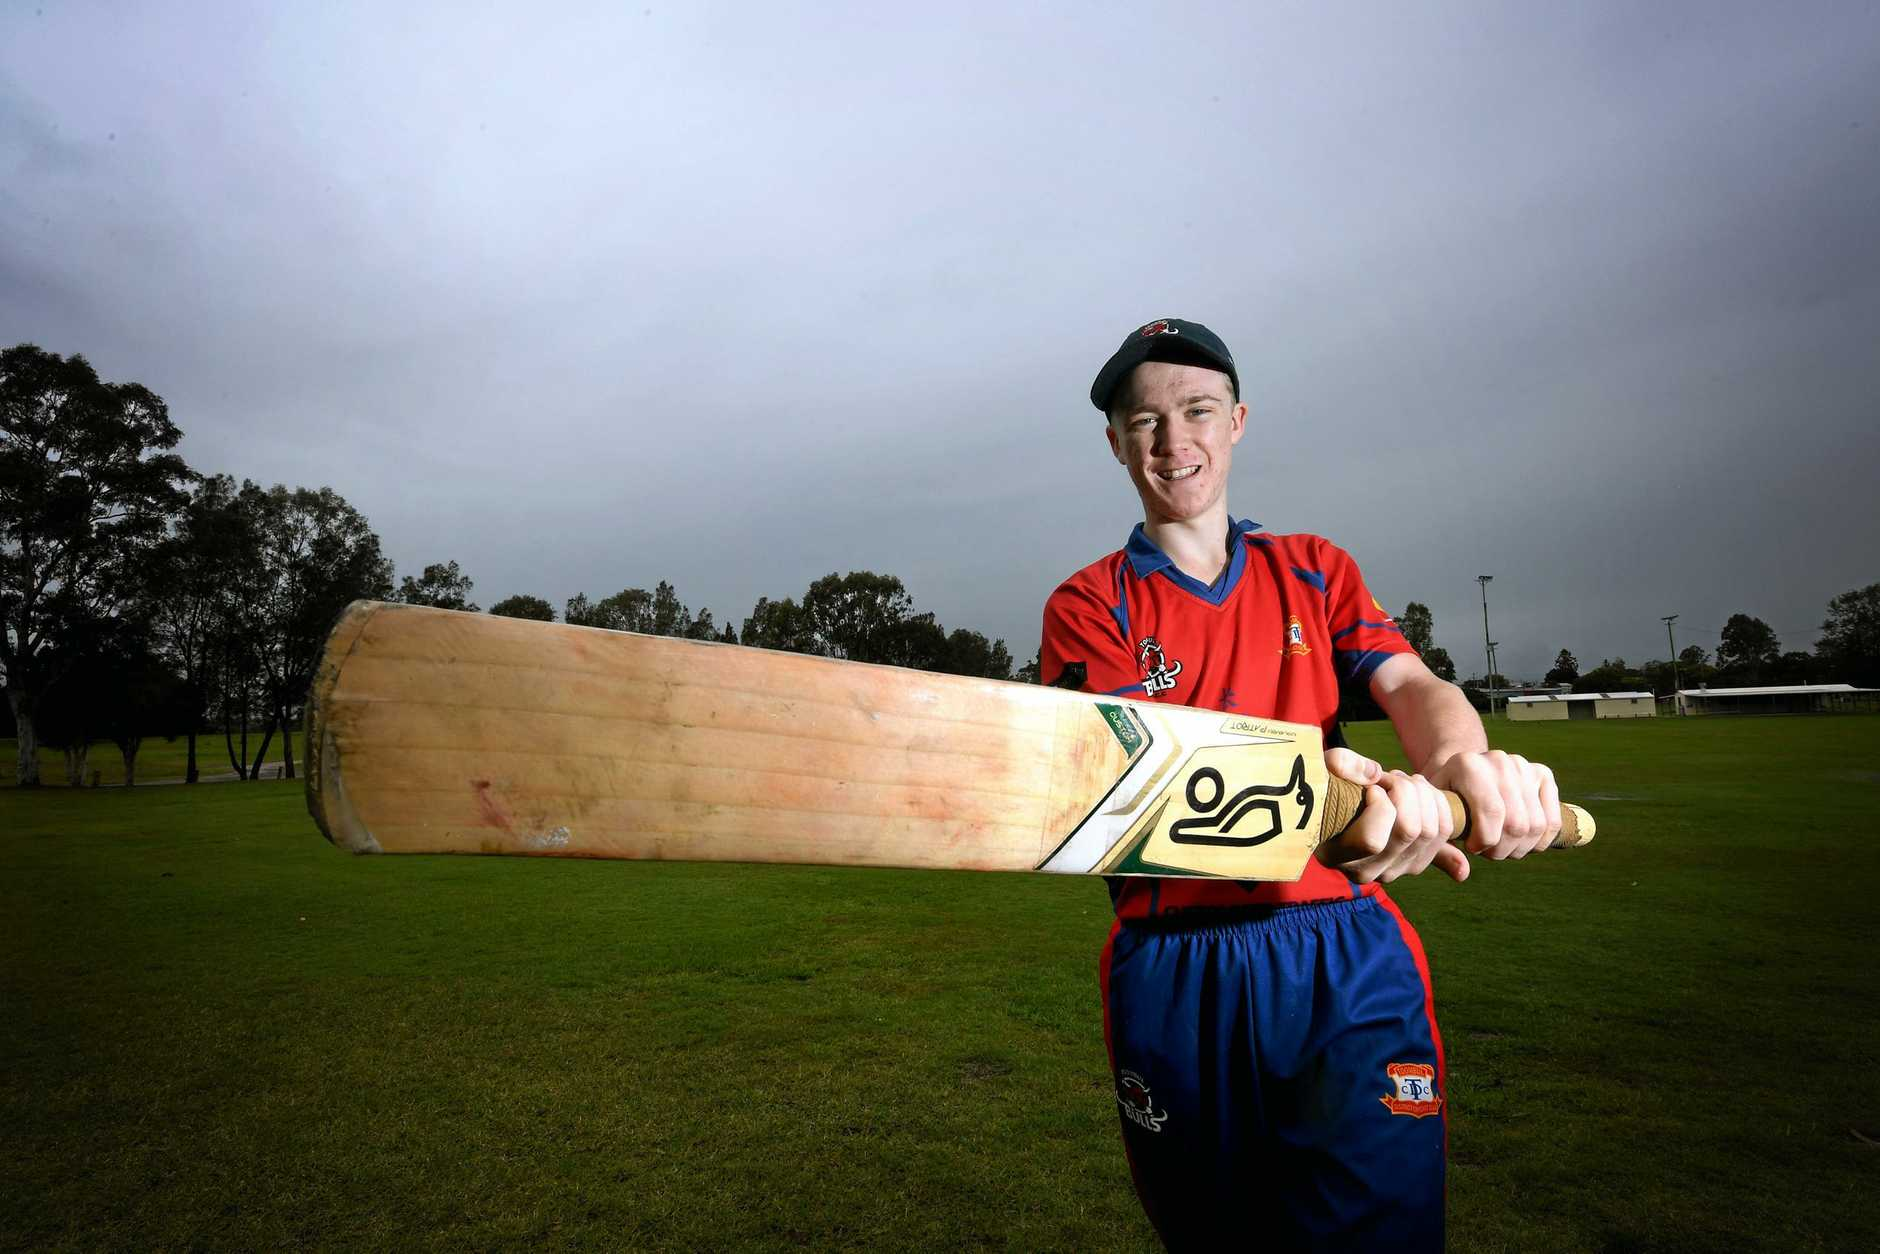 READY TO PLAY: Gympie cricketer Nick Laffey is set to represent Toombul in the Lord Taverners grand final early next month in Brisbane.